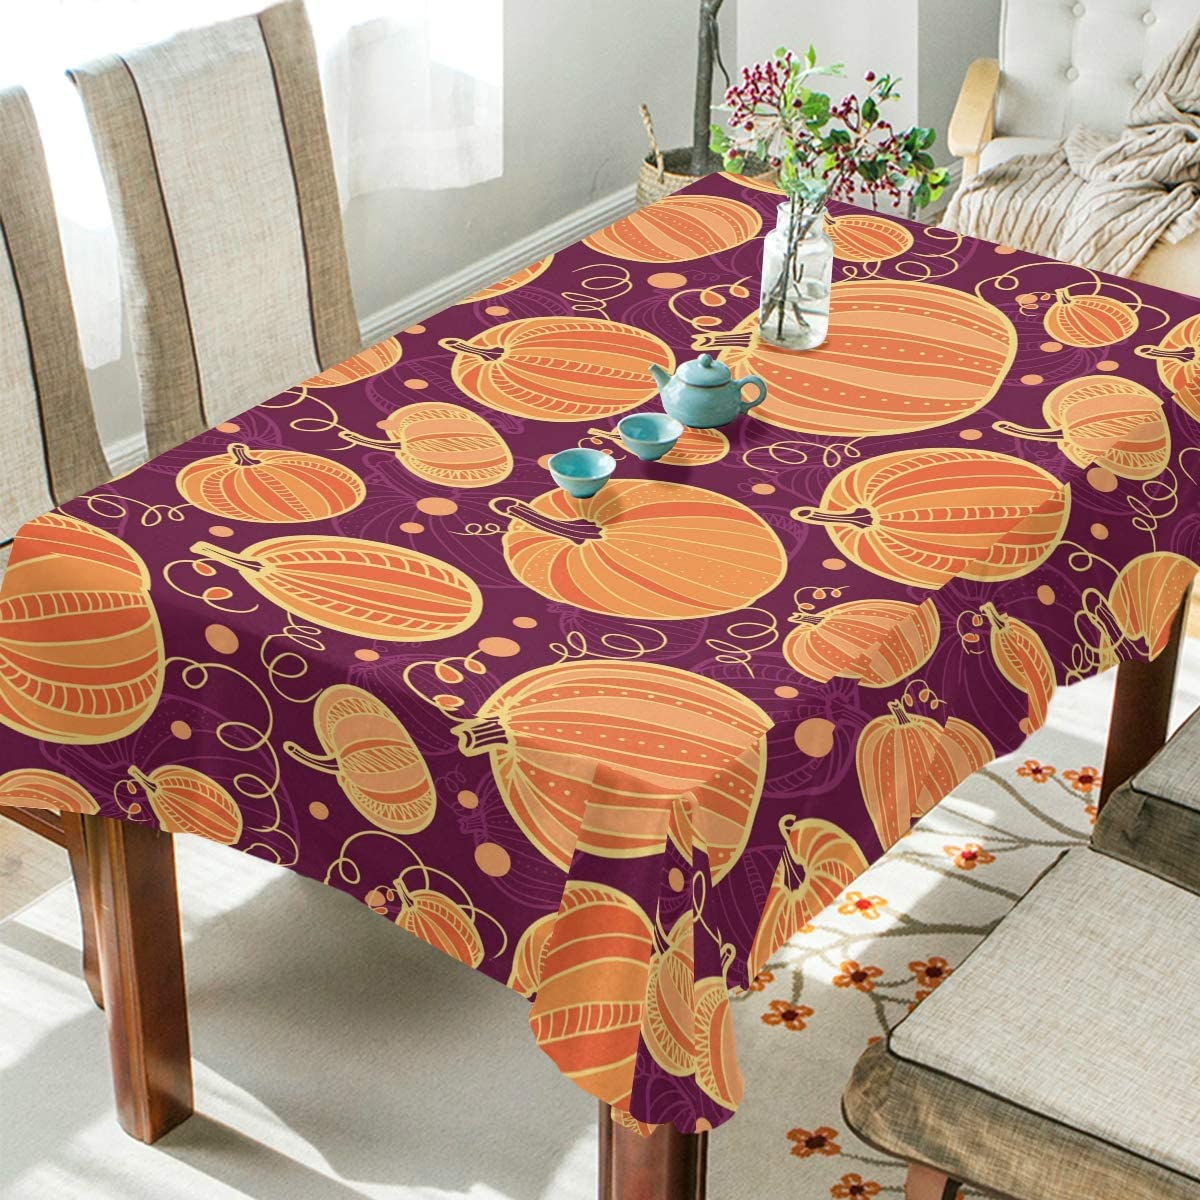 ALAZA Thanksgiving Pumpkins Table Cloth Rectangle 60 x 120 Inch Tablecloth Anti Wrinkle Table Cover for Dining Kitchen Parties